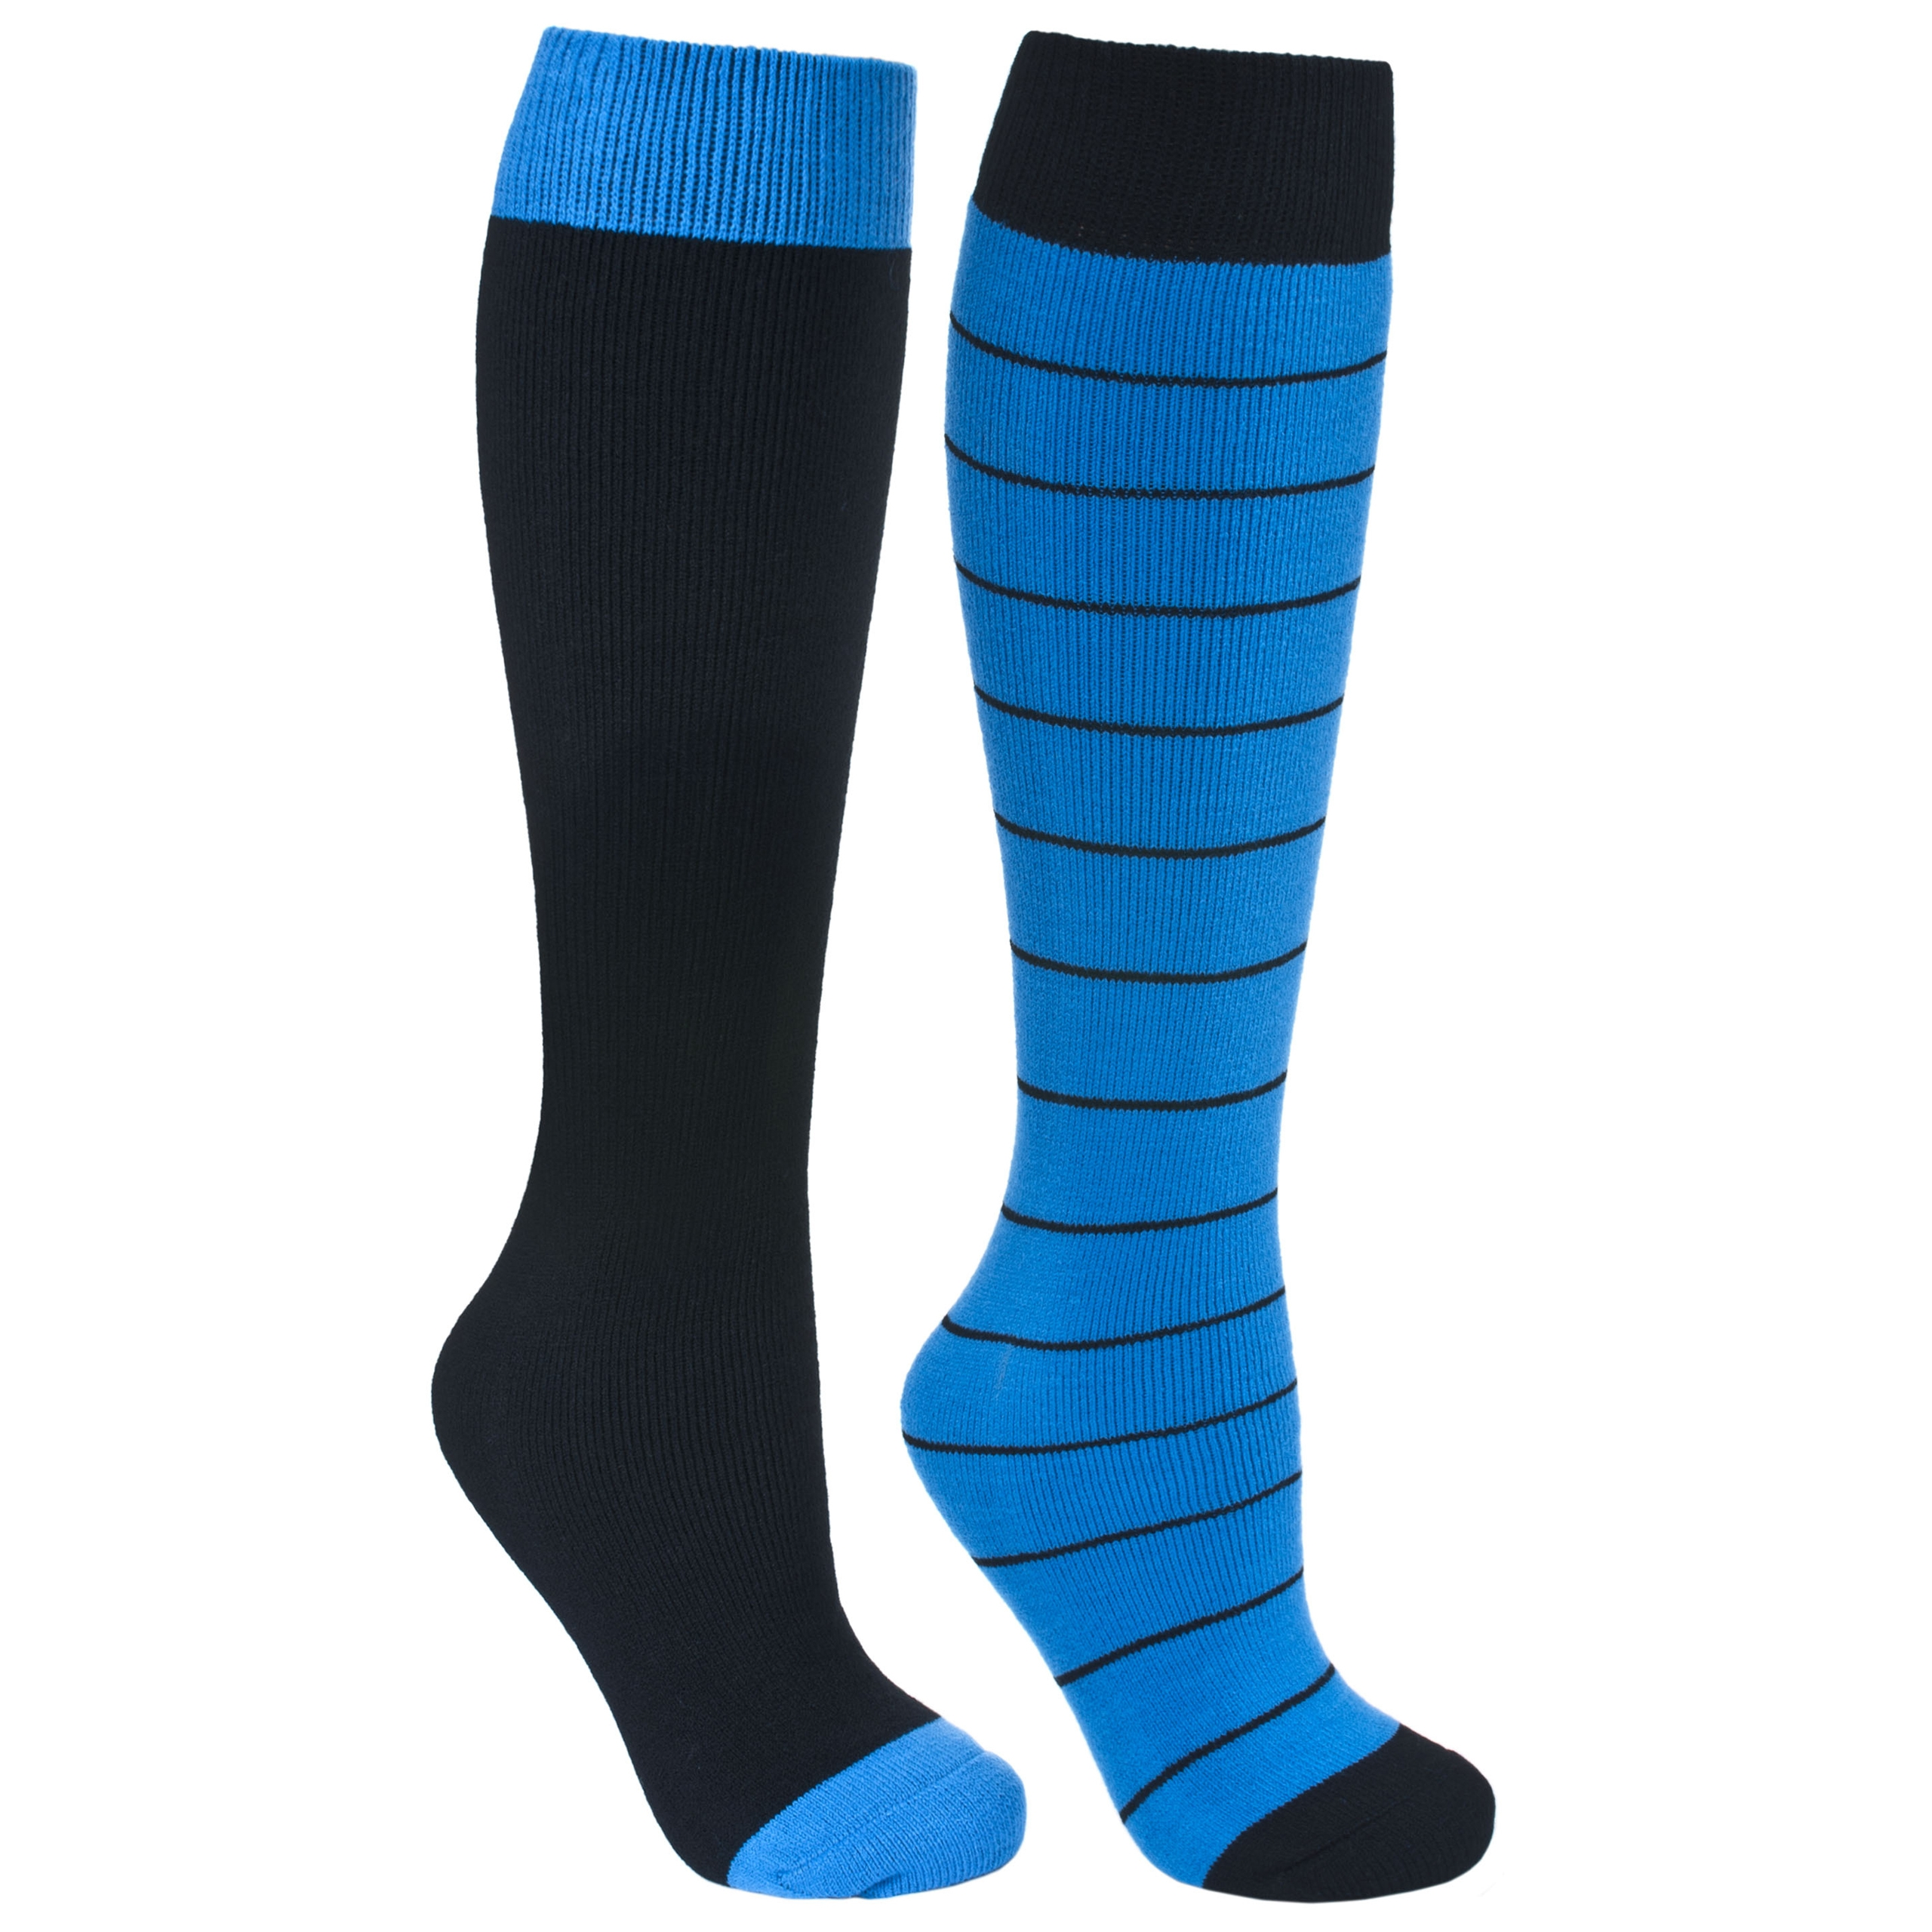 Toppy Unisex Tube Socks